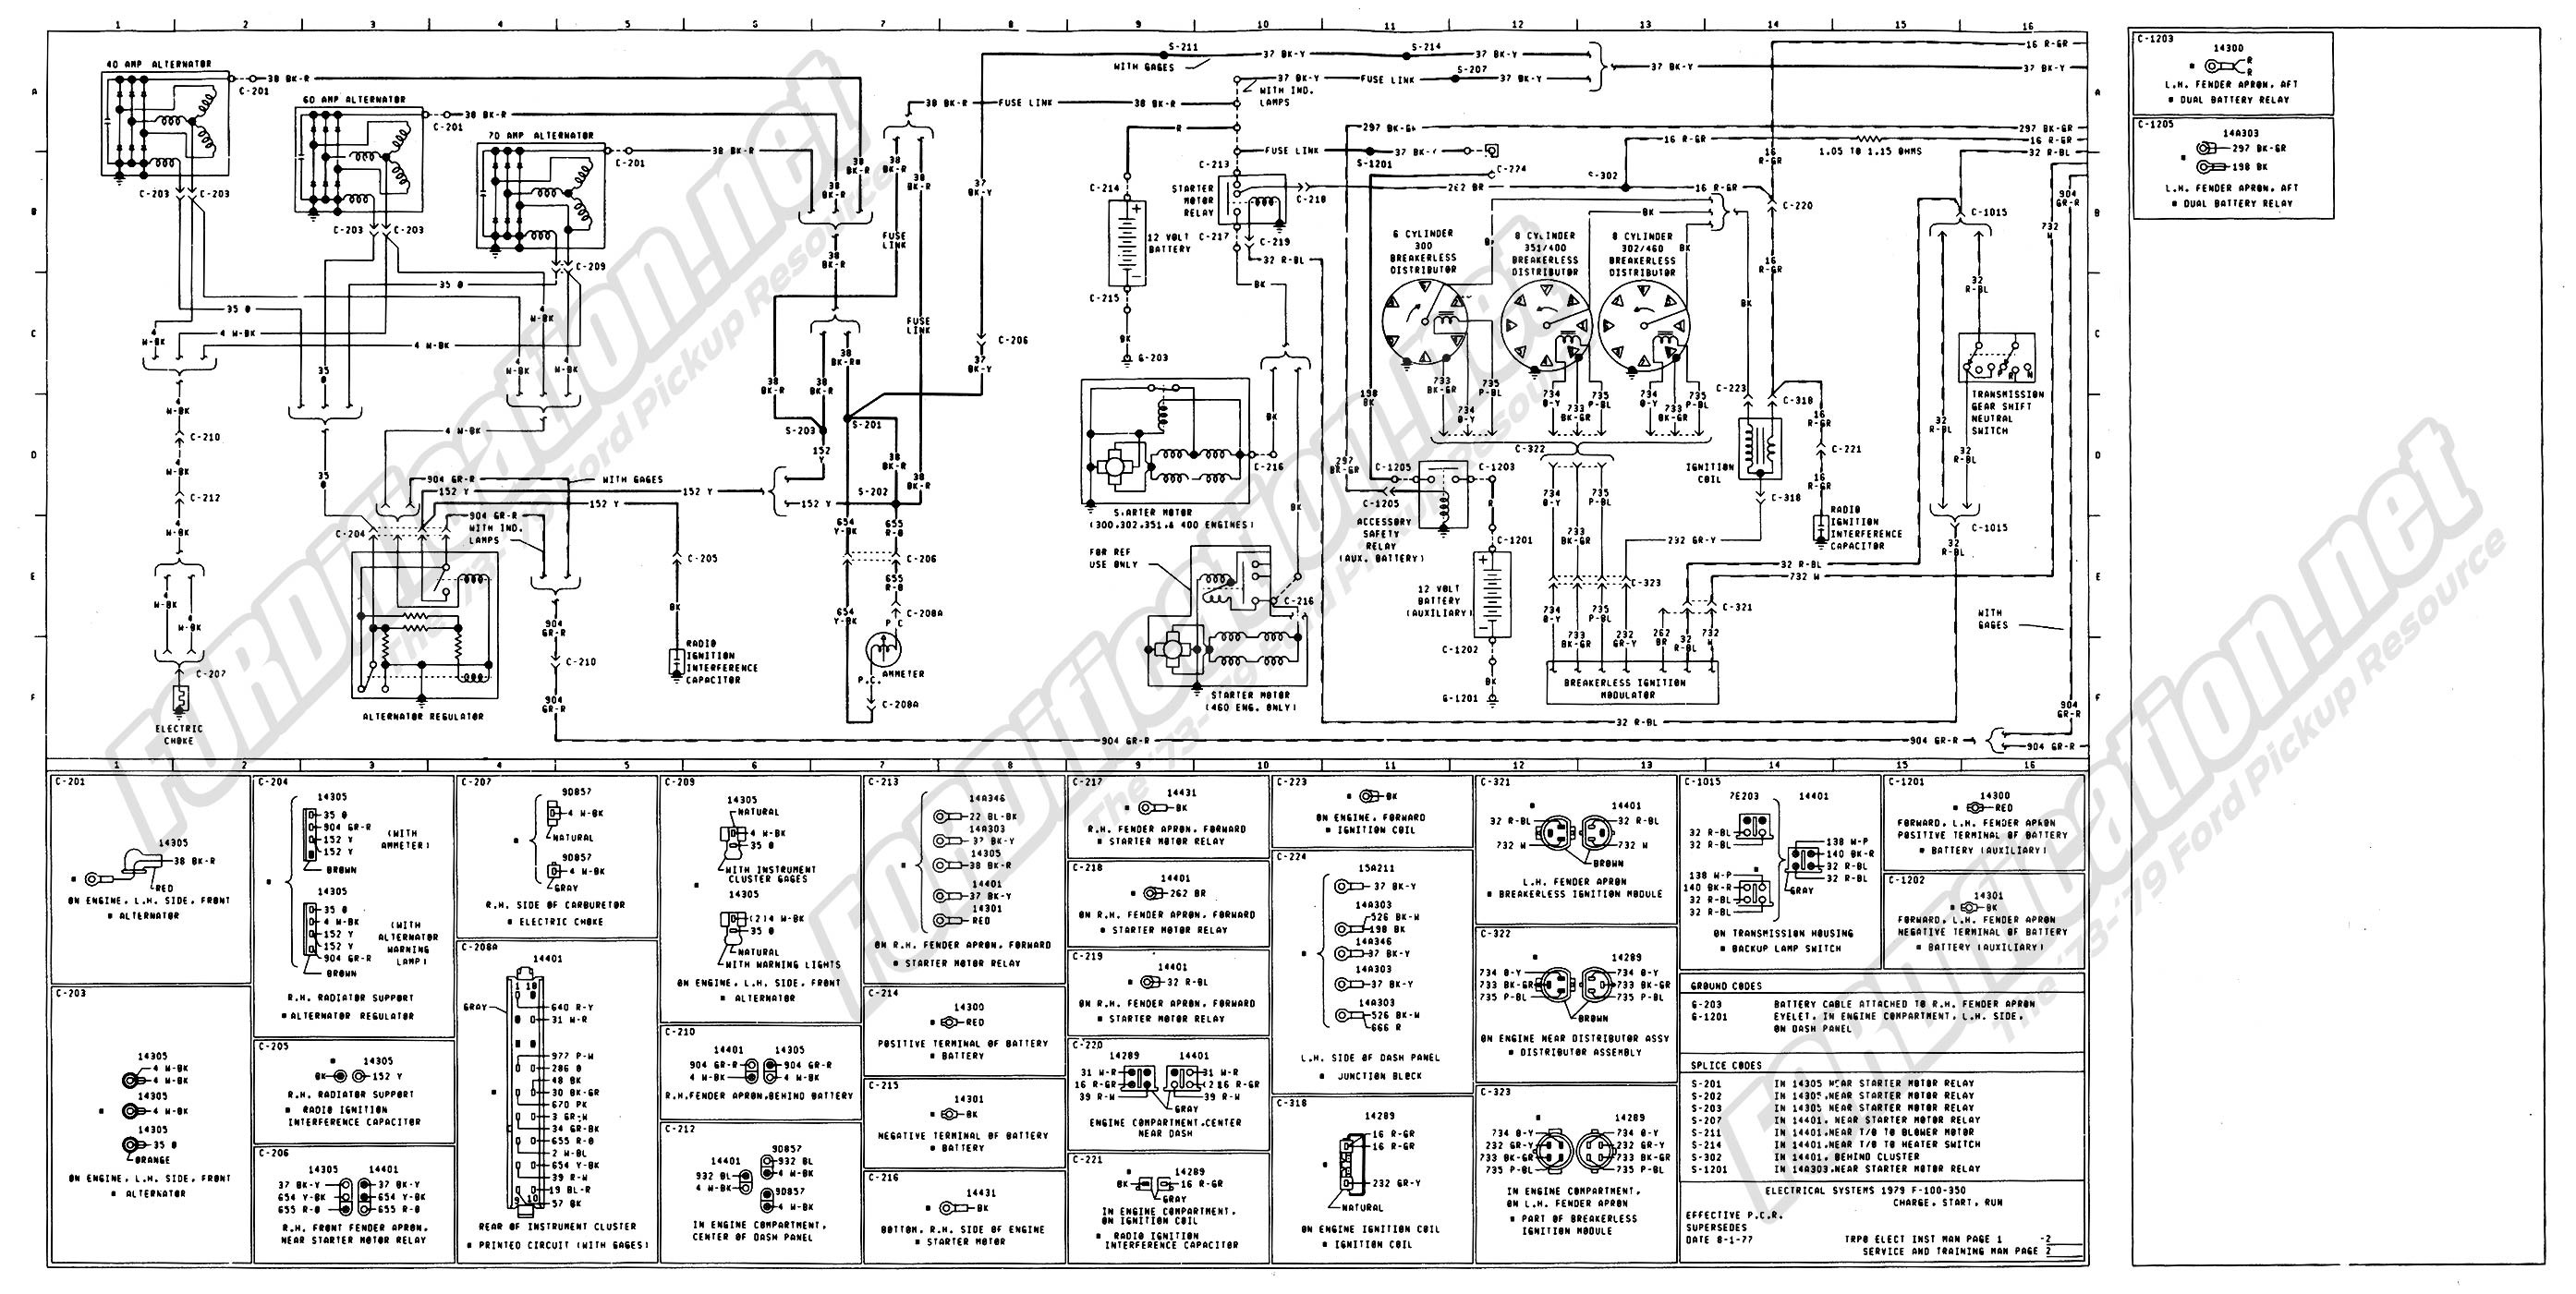 ford 1967 truck wiring diagram | wiring diagram 1967 ford f100 wiring diagram ford turn signal wire colors wiring diagram - autoscout24